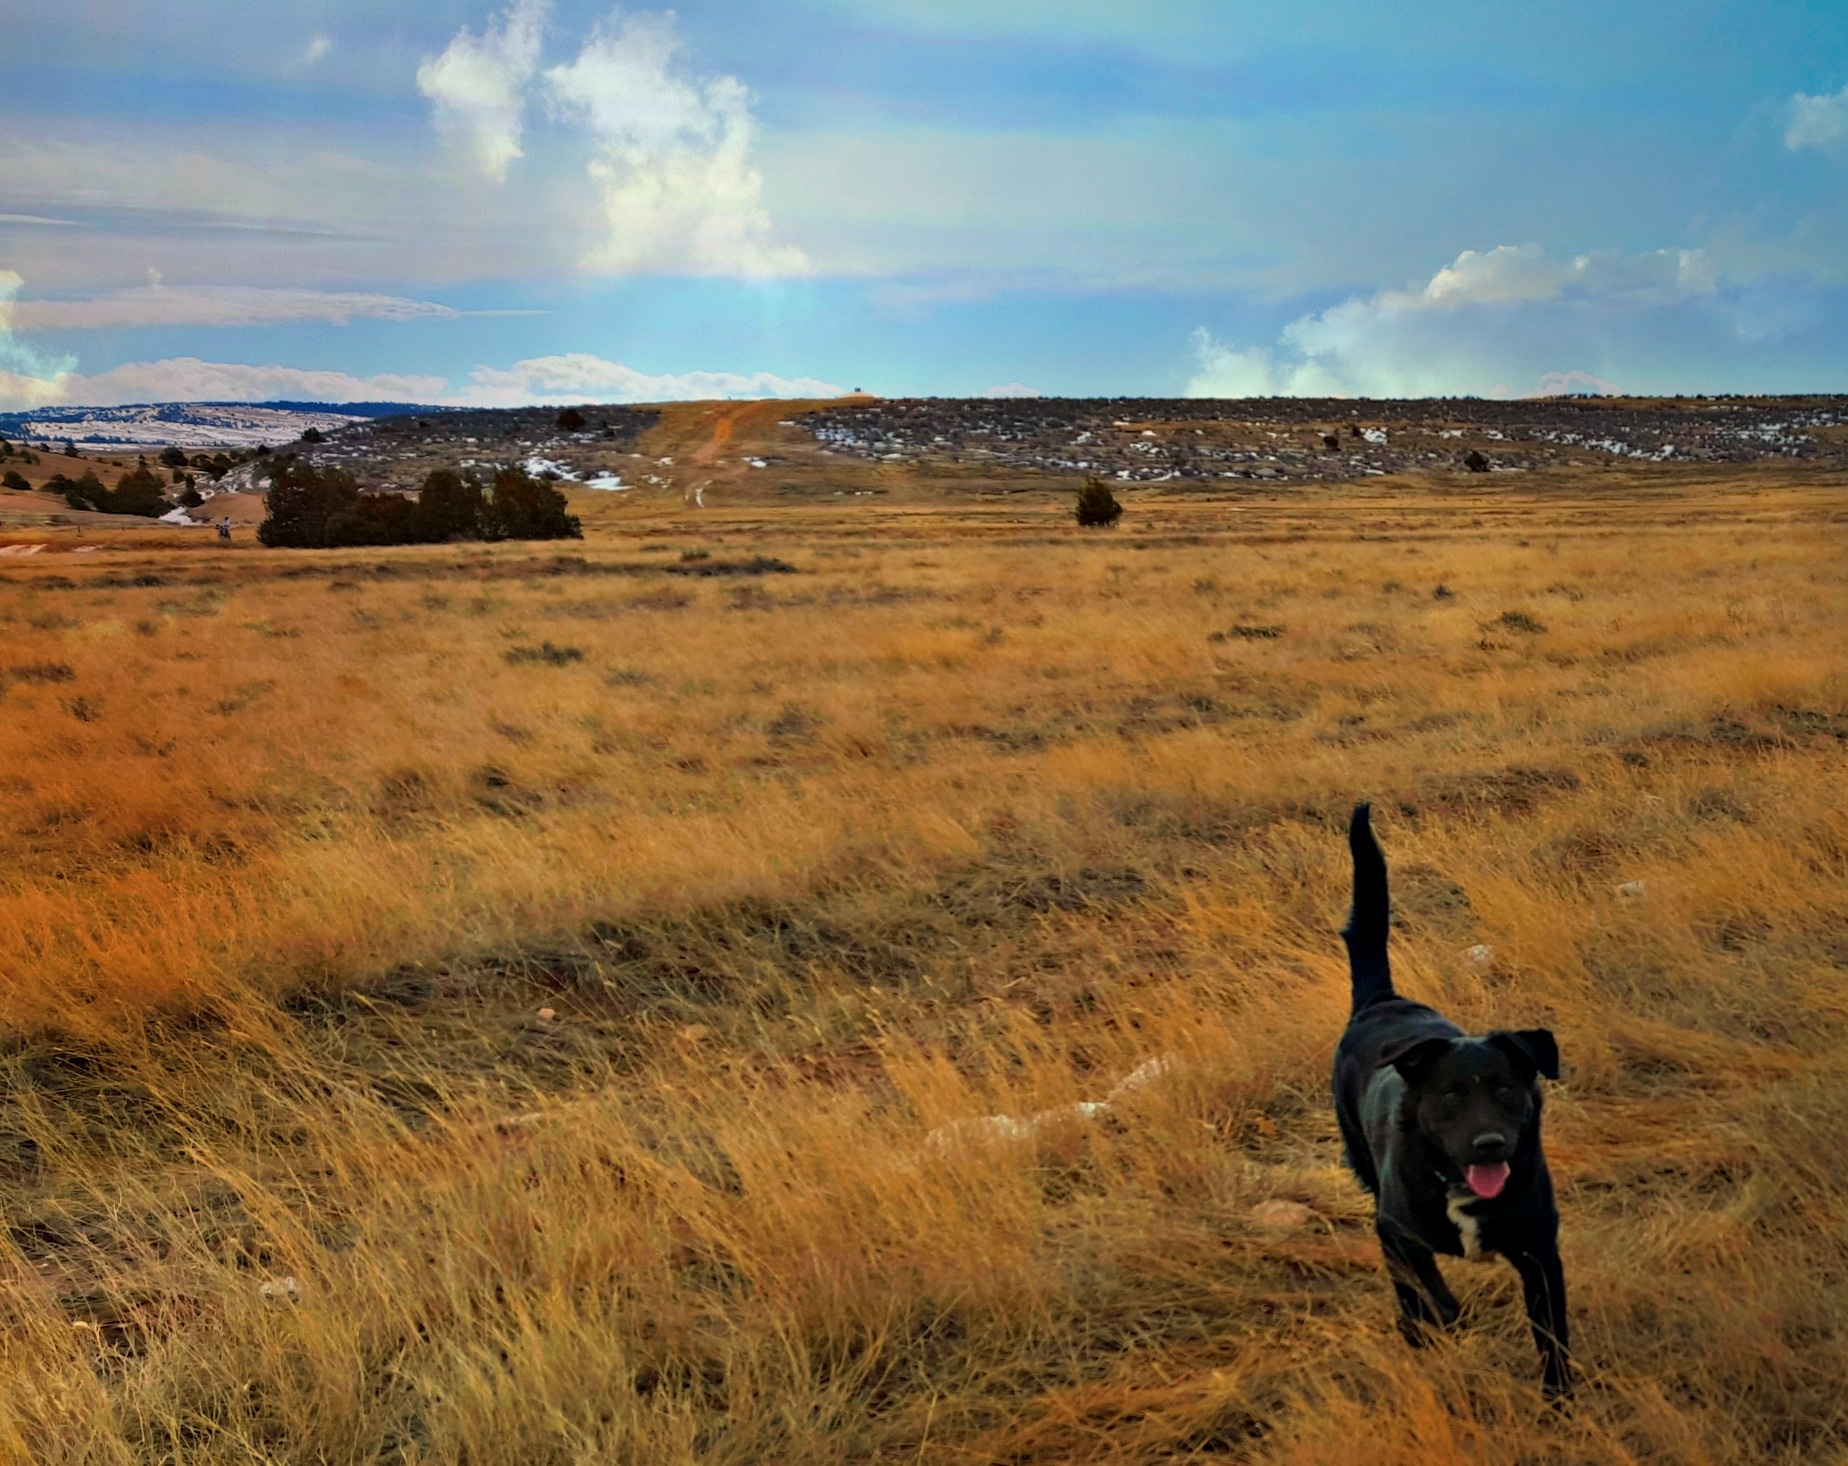 Ace on the Prarie by marta.givens